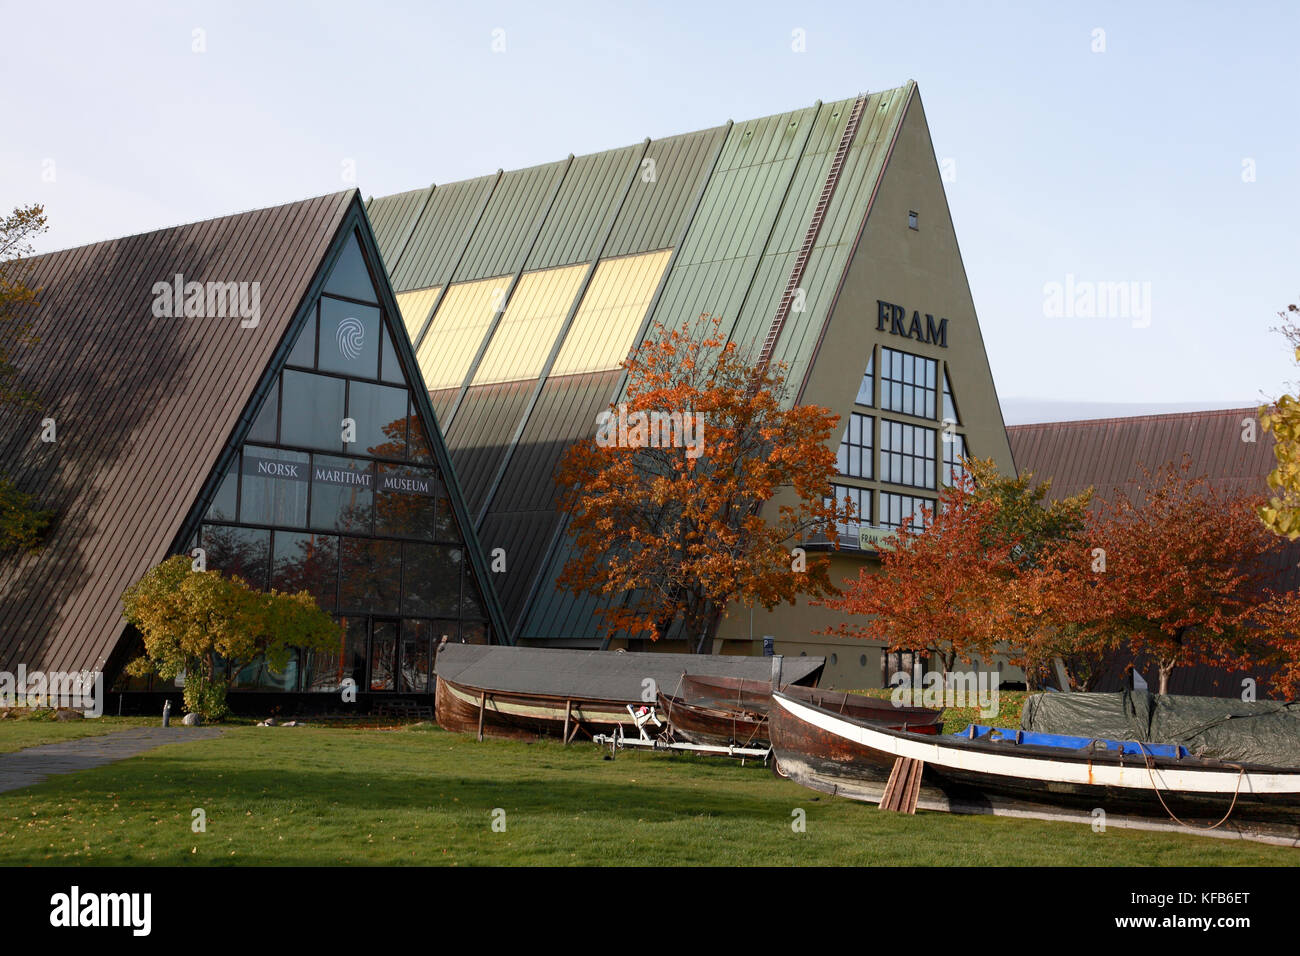 The Norwegian Maritime Museum and the Fram museum named after the ship used by Norwegian Arctic and Antarctic explorers - Stock Image